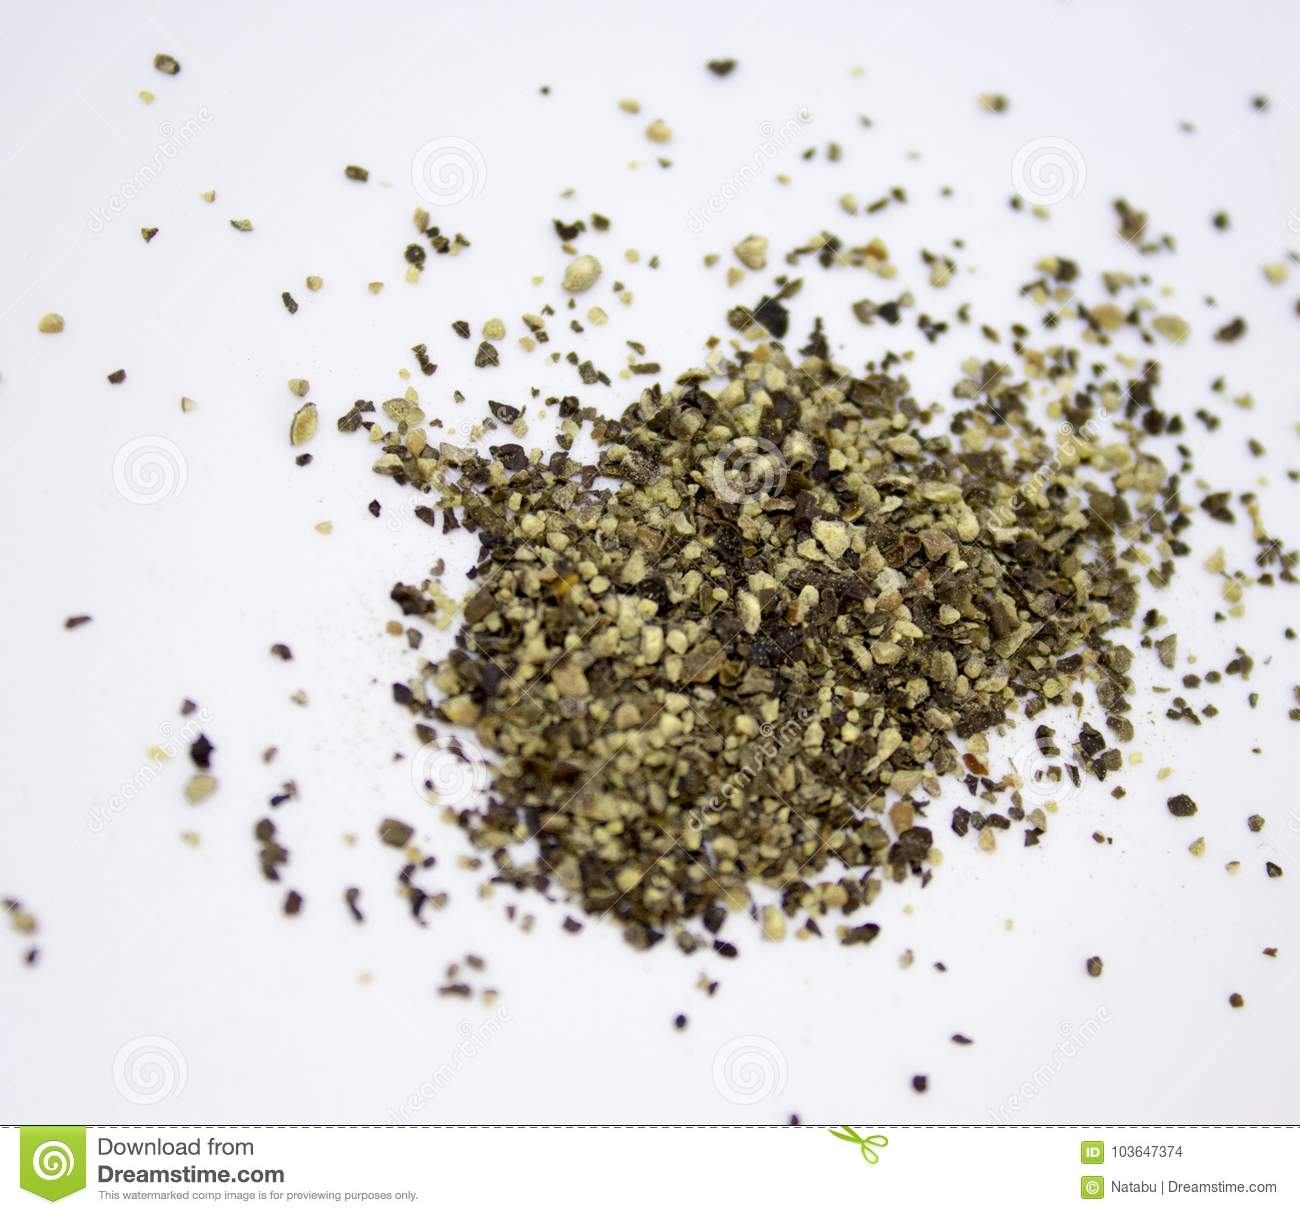 Spilled ground pepper